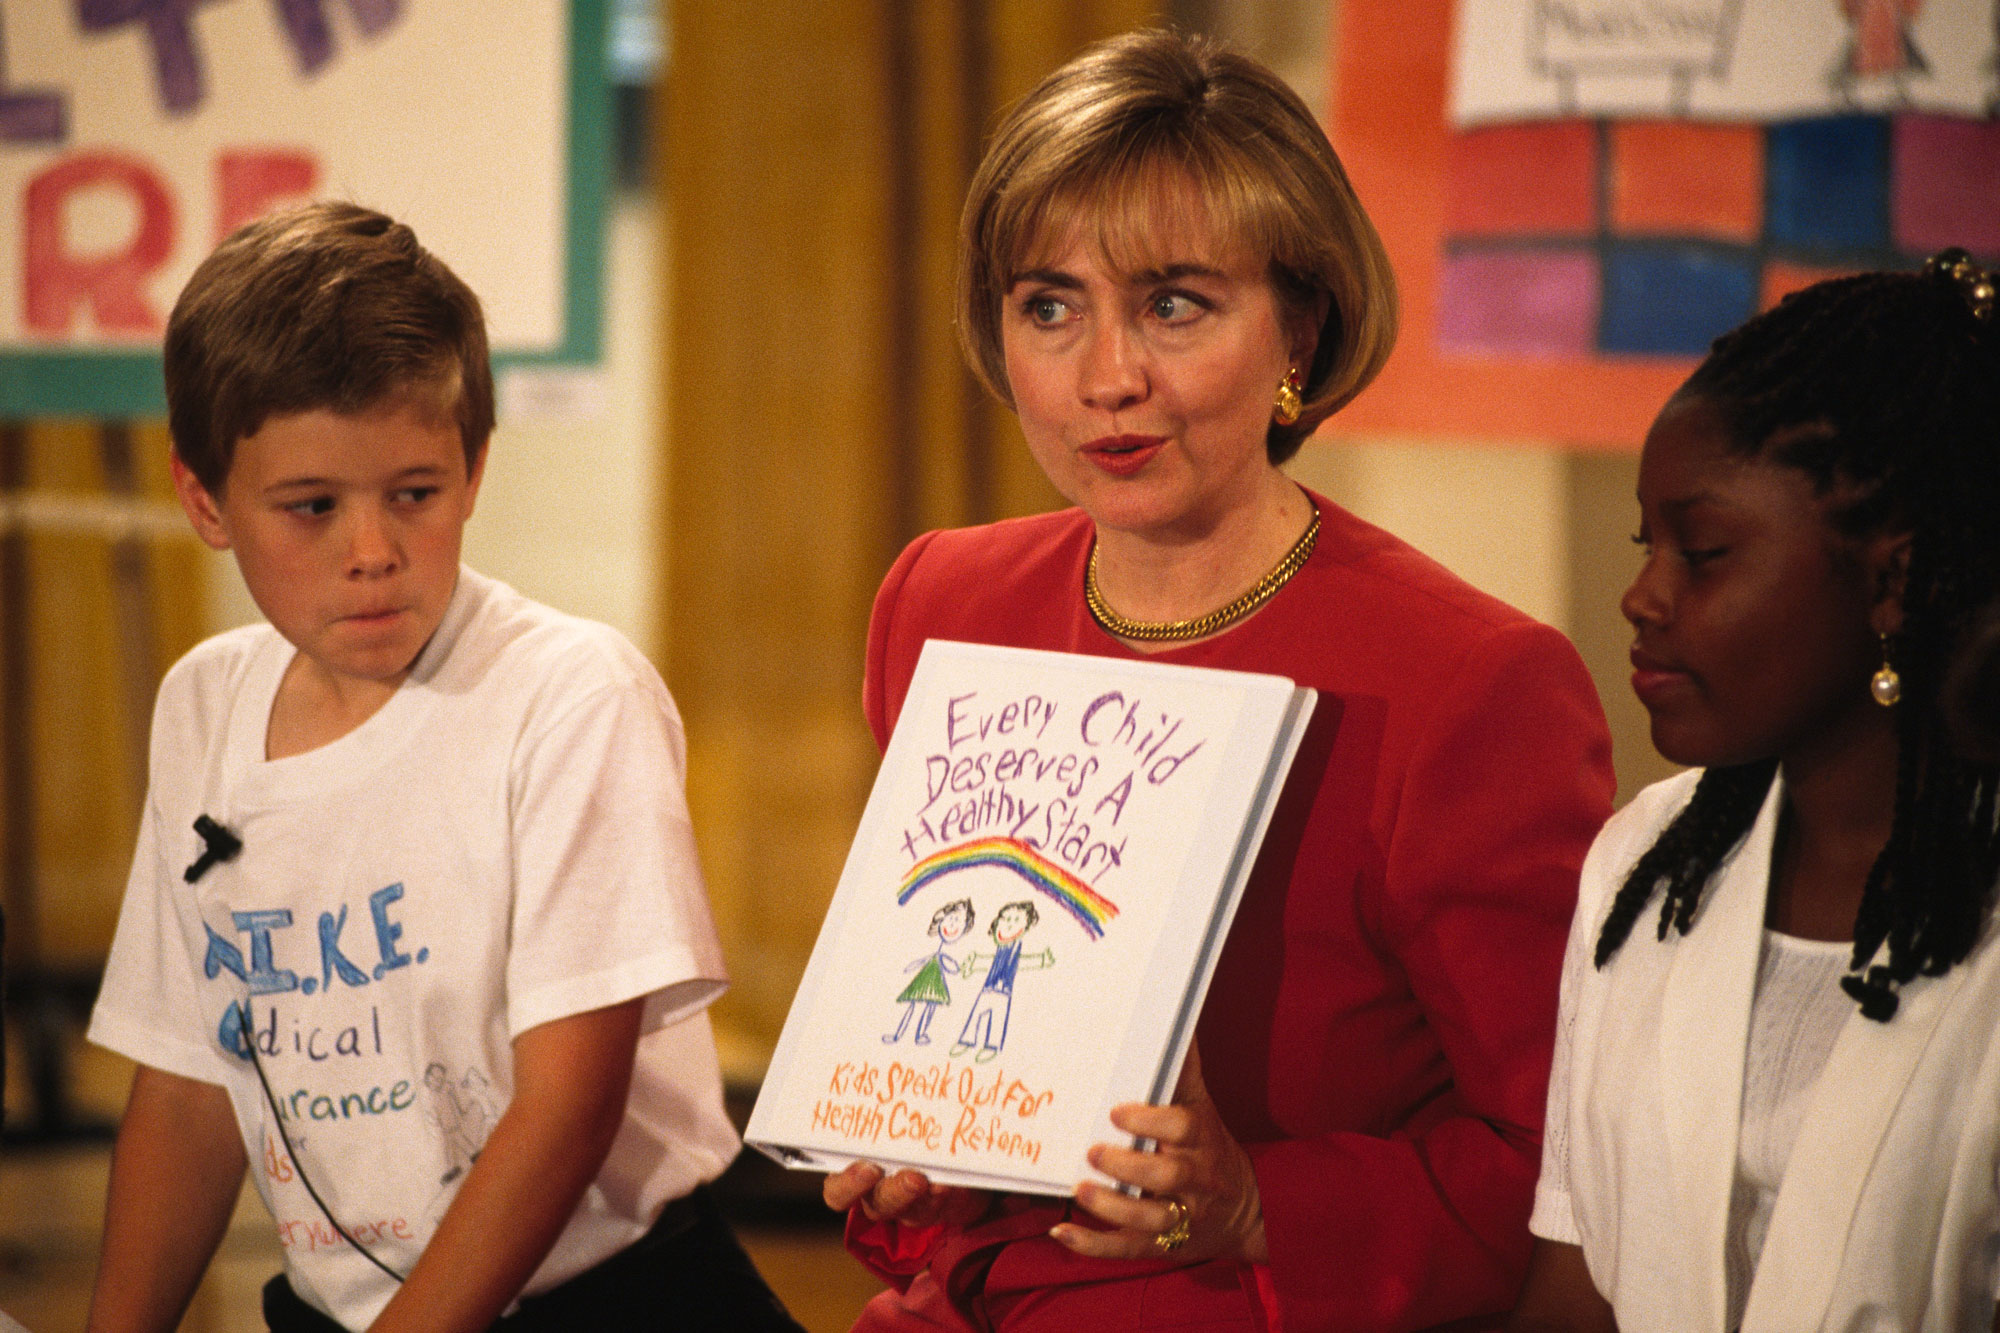 Hillary Clinton meets with 12 chidren in response to their letter to the President concerning their health problems. (Photo by Jeffrey Markowitz/Sygma via Getty Images)